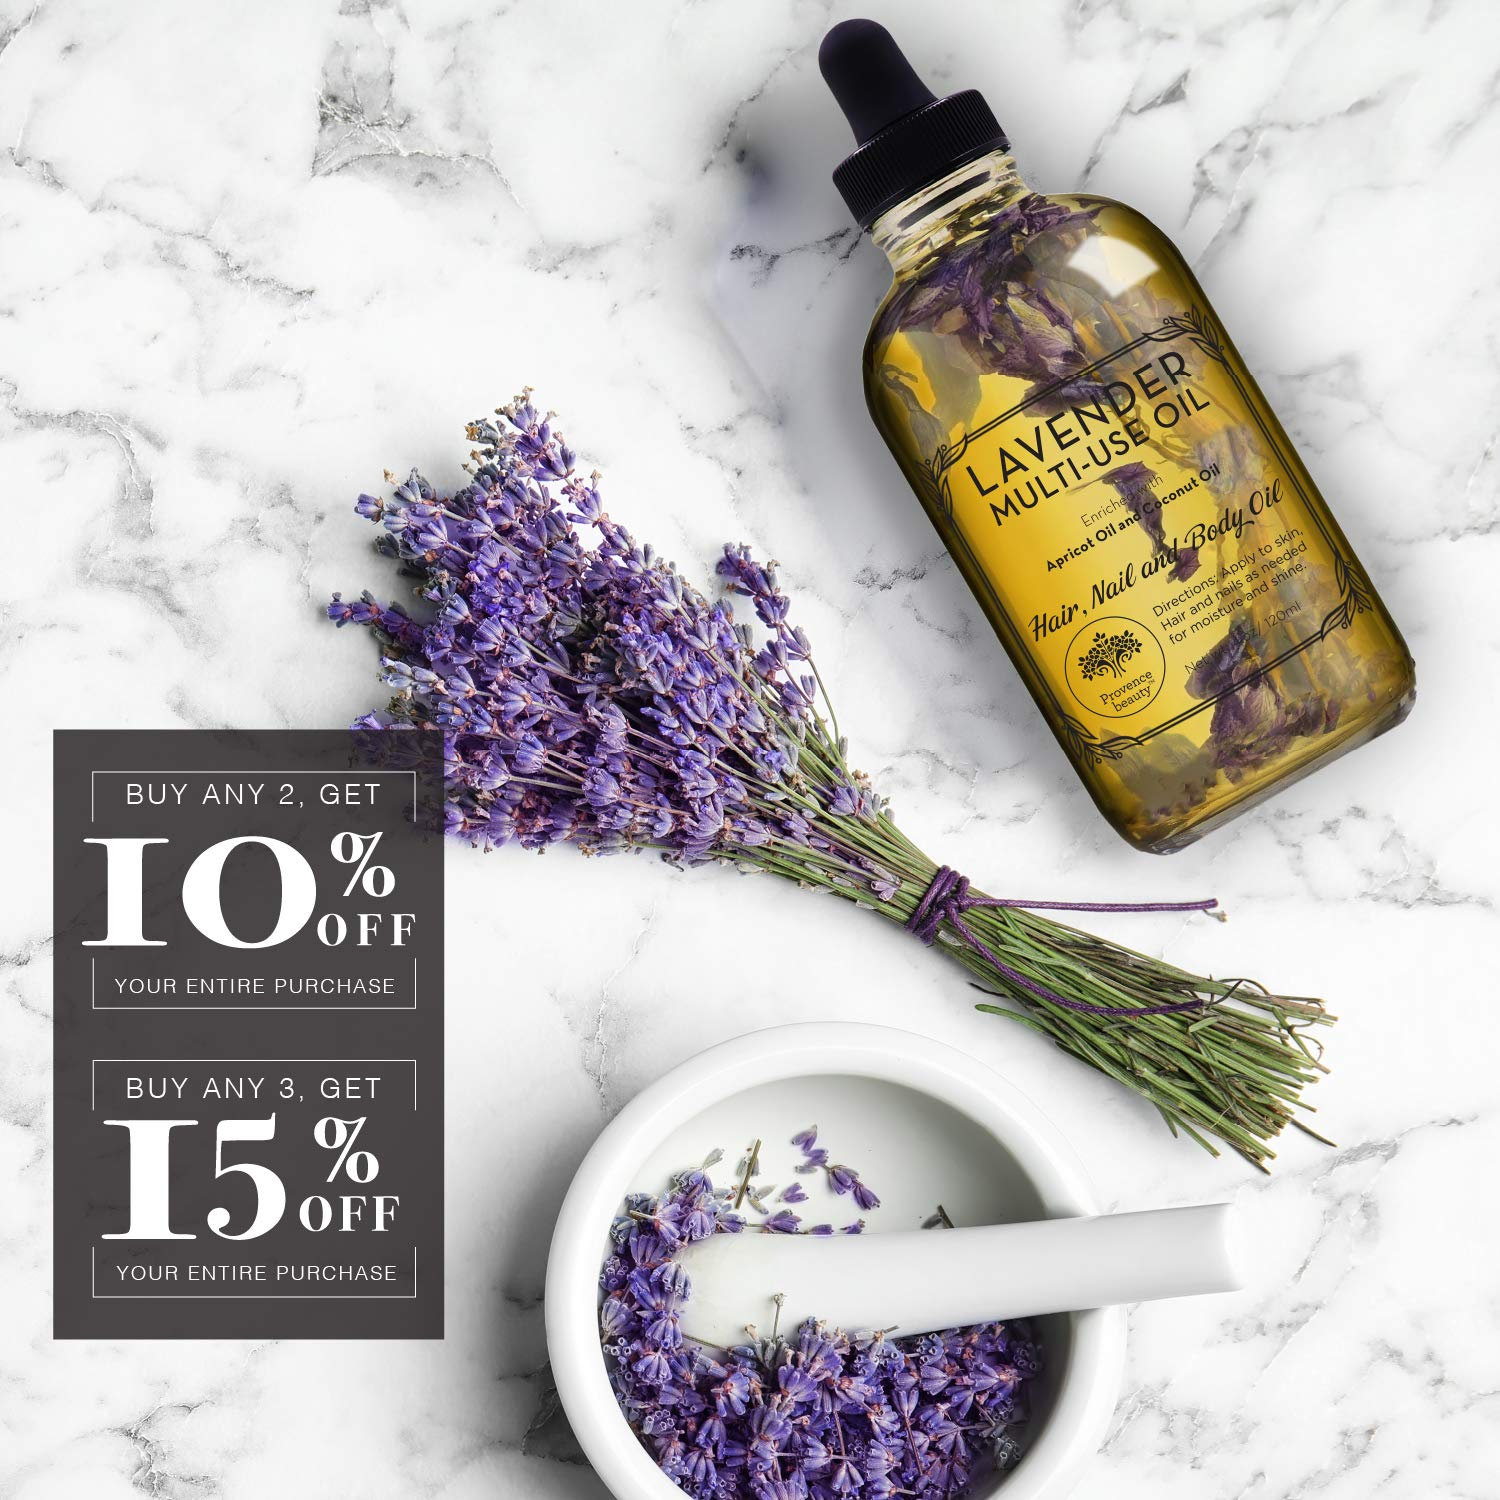 Lavender Multi-Use Oil for Face, Body and Hair - Organic Blend of Apricot, Vitamin E, Fractionated Coocnut and Sweet Almond Oil Moisturizer for Dry Skin, Scalp and Nails - 4 Fl Oz : Beauty